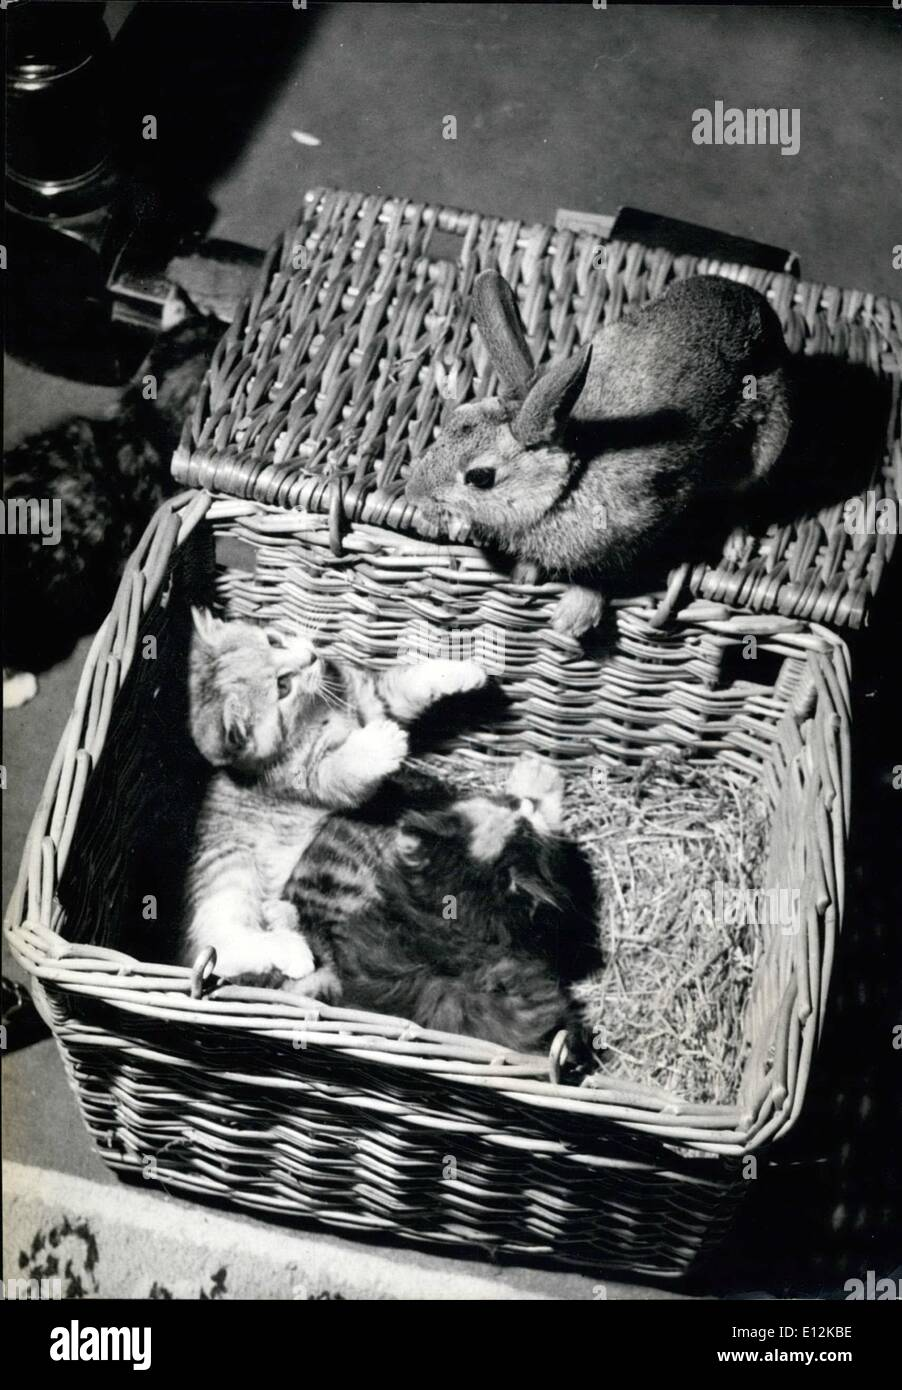 Feb. 24, 2012 - Odd Men cut it's wrigglemuse, the rabbit: Beware! Bunny's on the basket. the Kittens seem to be saying. Bunny, is the domesticated rabbit belonging to Mrs. Johnson wife of a farmer near Briston, which was reared by her ginger cat at the same time as the kittens. All are really great friends, but the rabbit loves teasing the kittens by suddenly appearing on the lid of the laundry basket which serves as their bedroom. - Stock Image